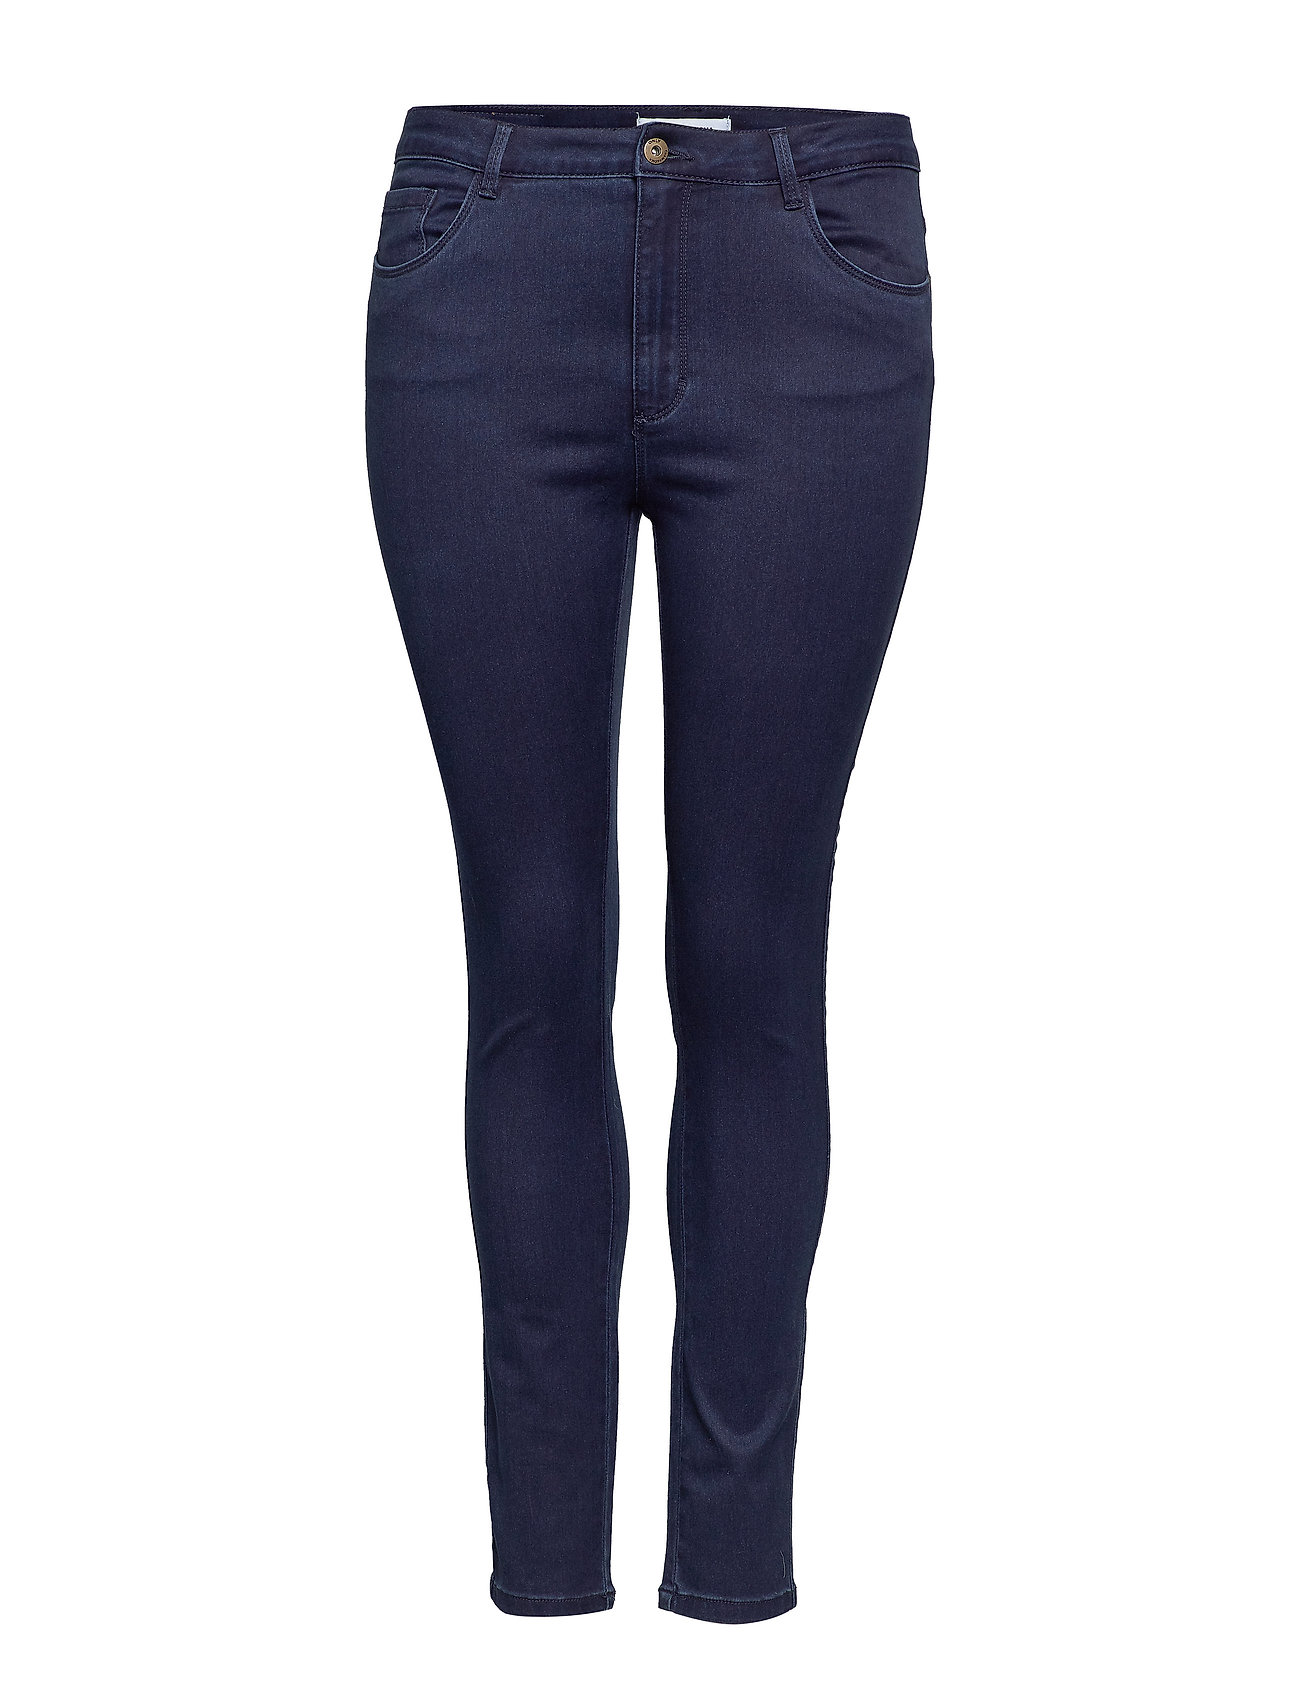 Image of Caraugusta Hw Skinny Jeans Bb Dbd Noos Skinny Jeans Blå ONLY Carmakoma (3220881773)